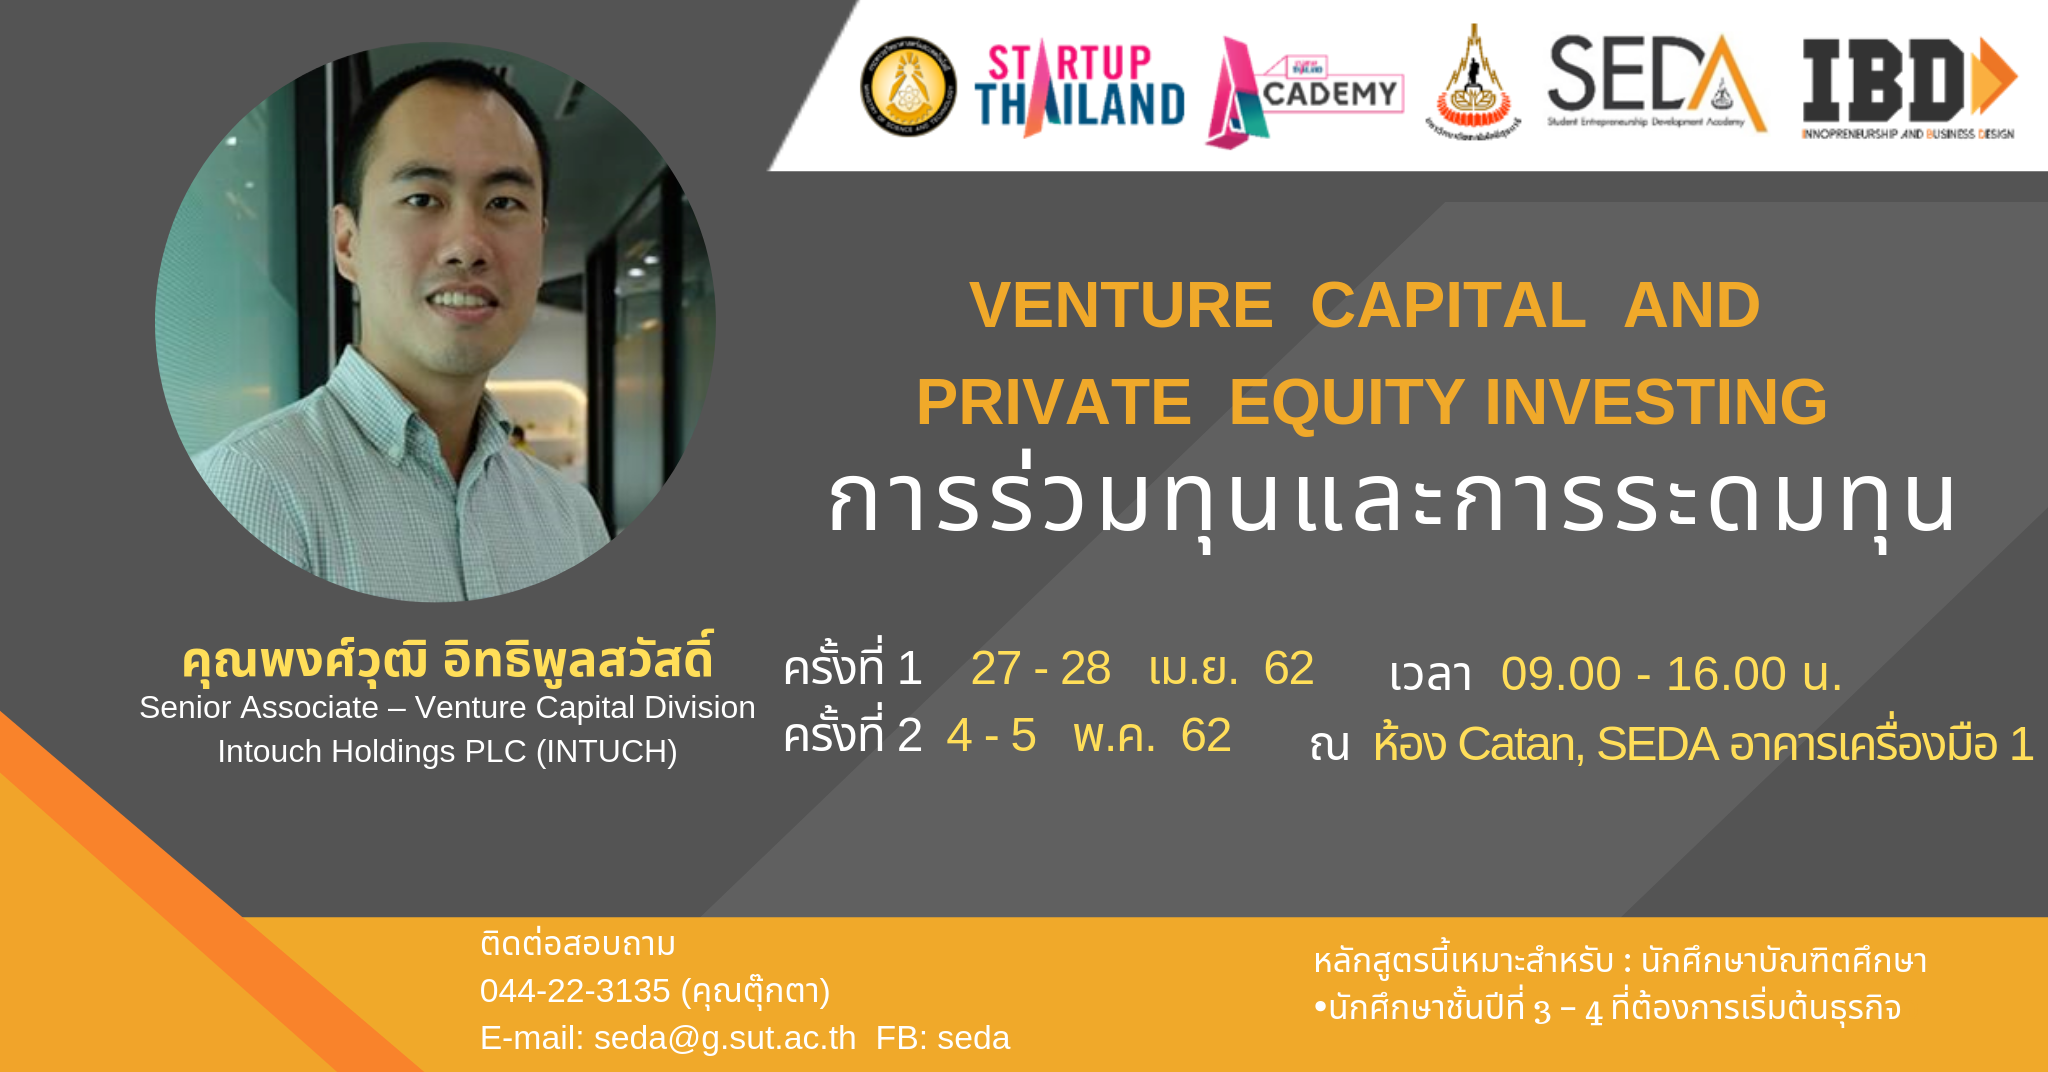 VENTURE CAPITAL AND PRIVATE EQUITY INVESTING - SEDA